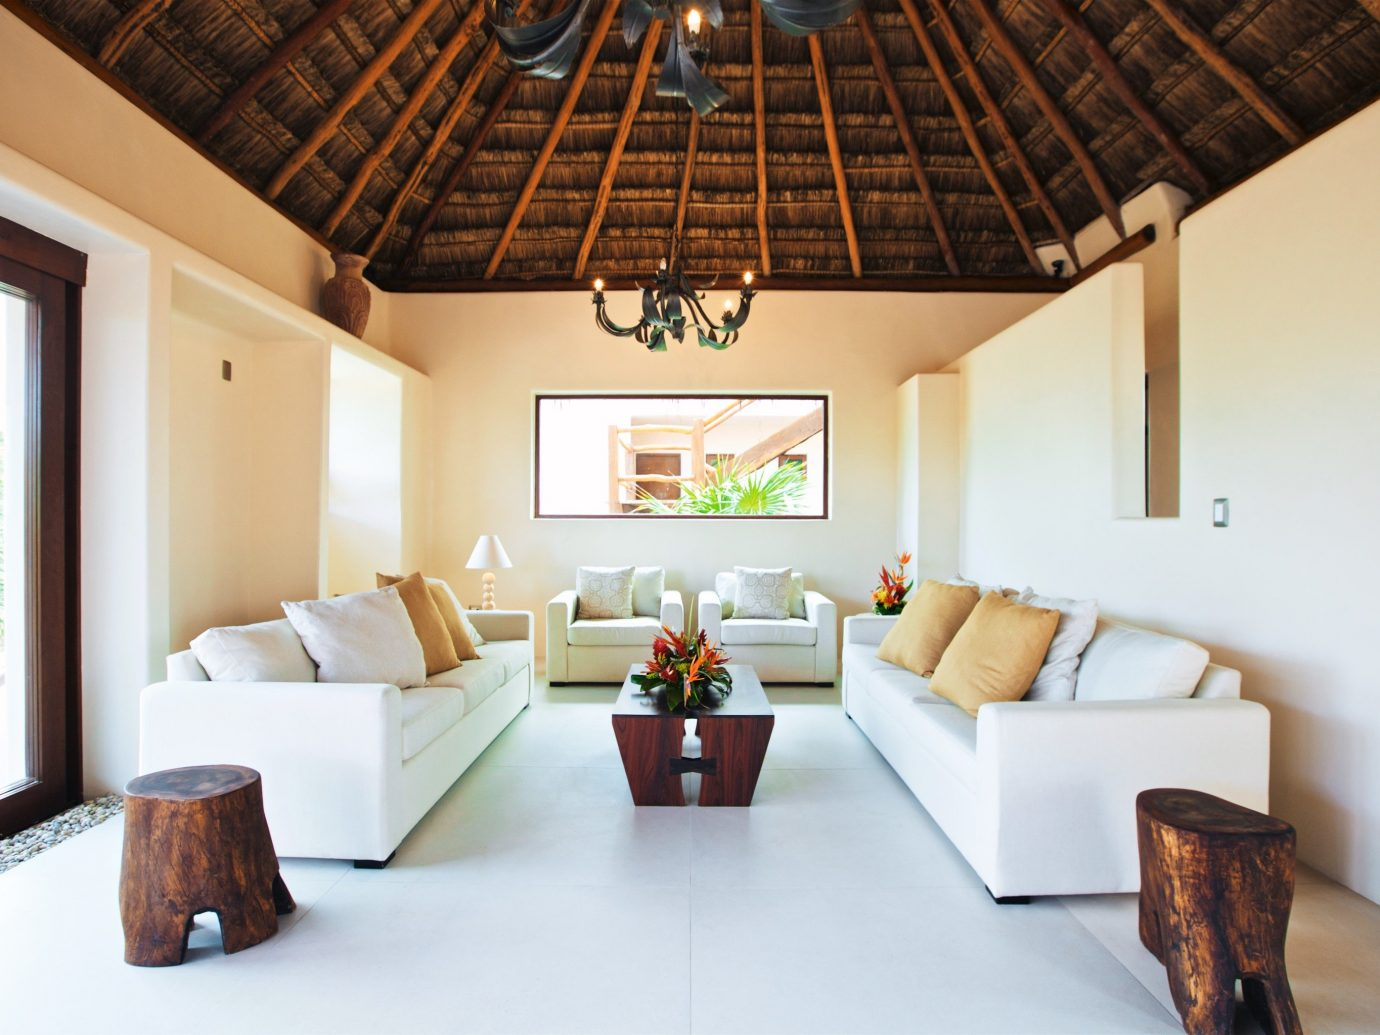 Boutique Hotels Hotels Mexico Tulum indoor wall Living room floor property ceiling living room interior design estate furniture real estate Suite daylighting house interior designer area wood